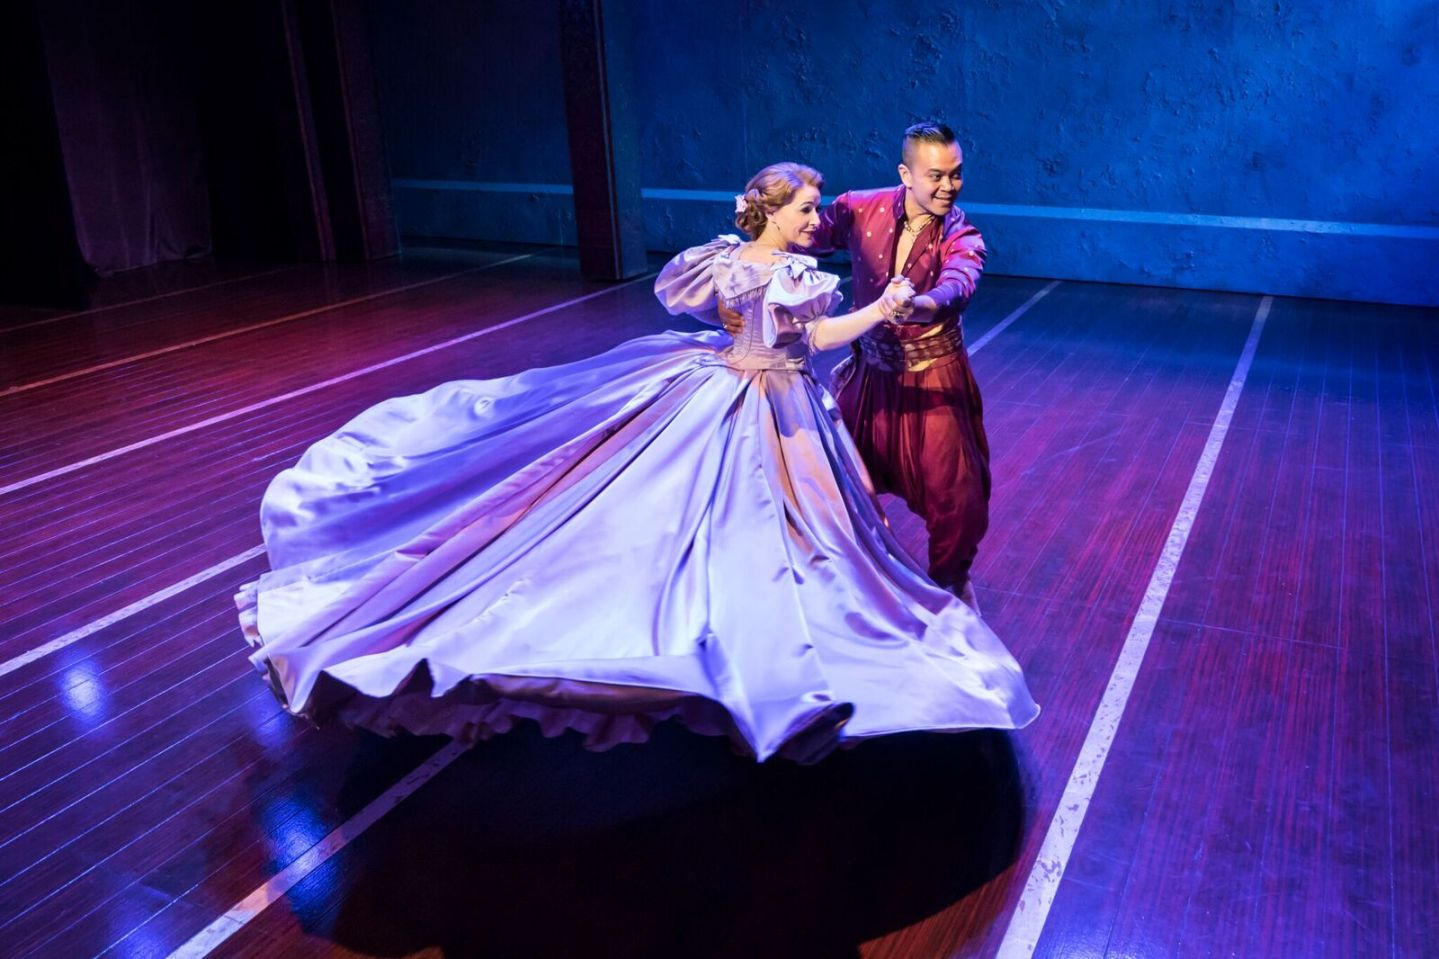 1 - Shall We Dance? The King and I Has Arrived.